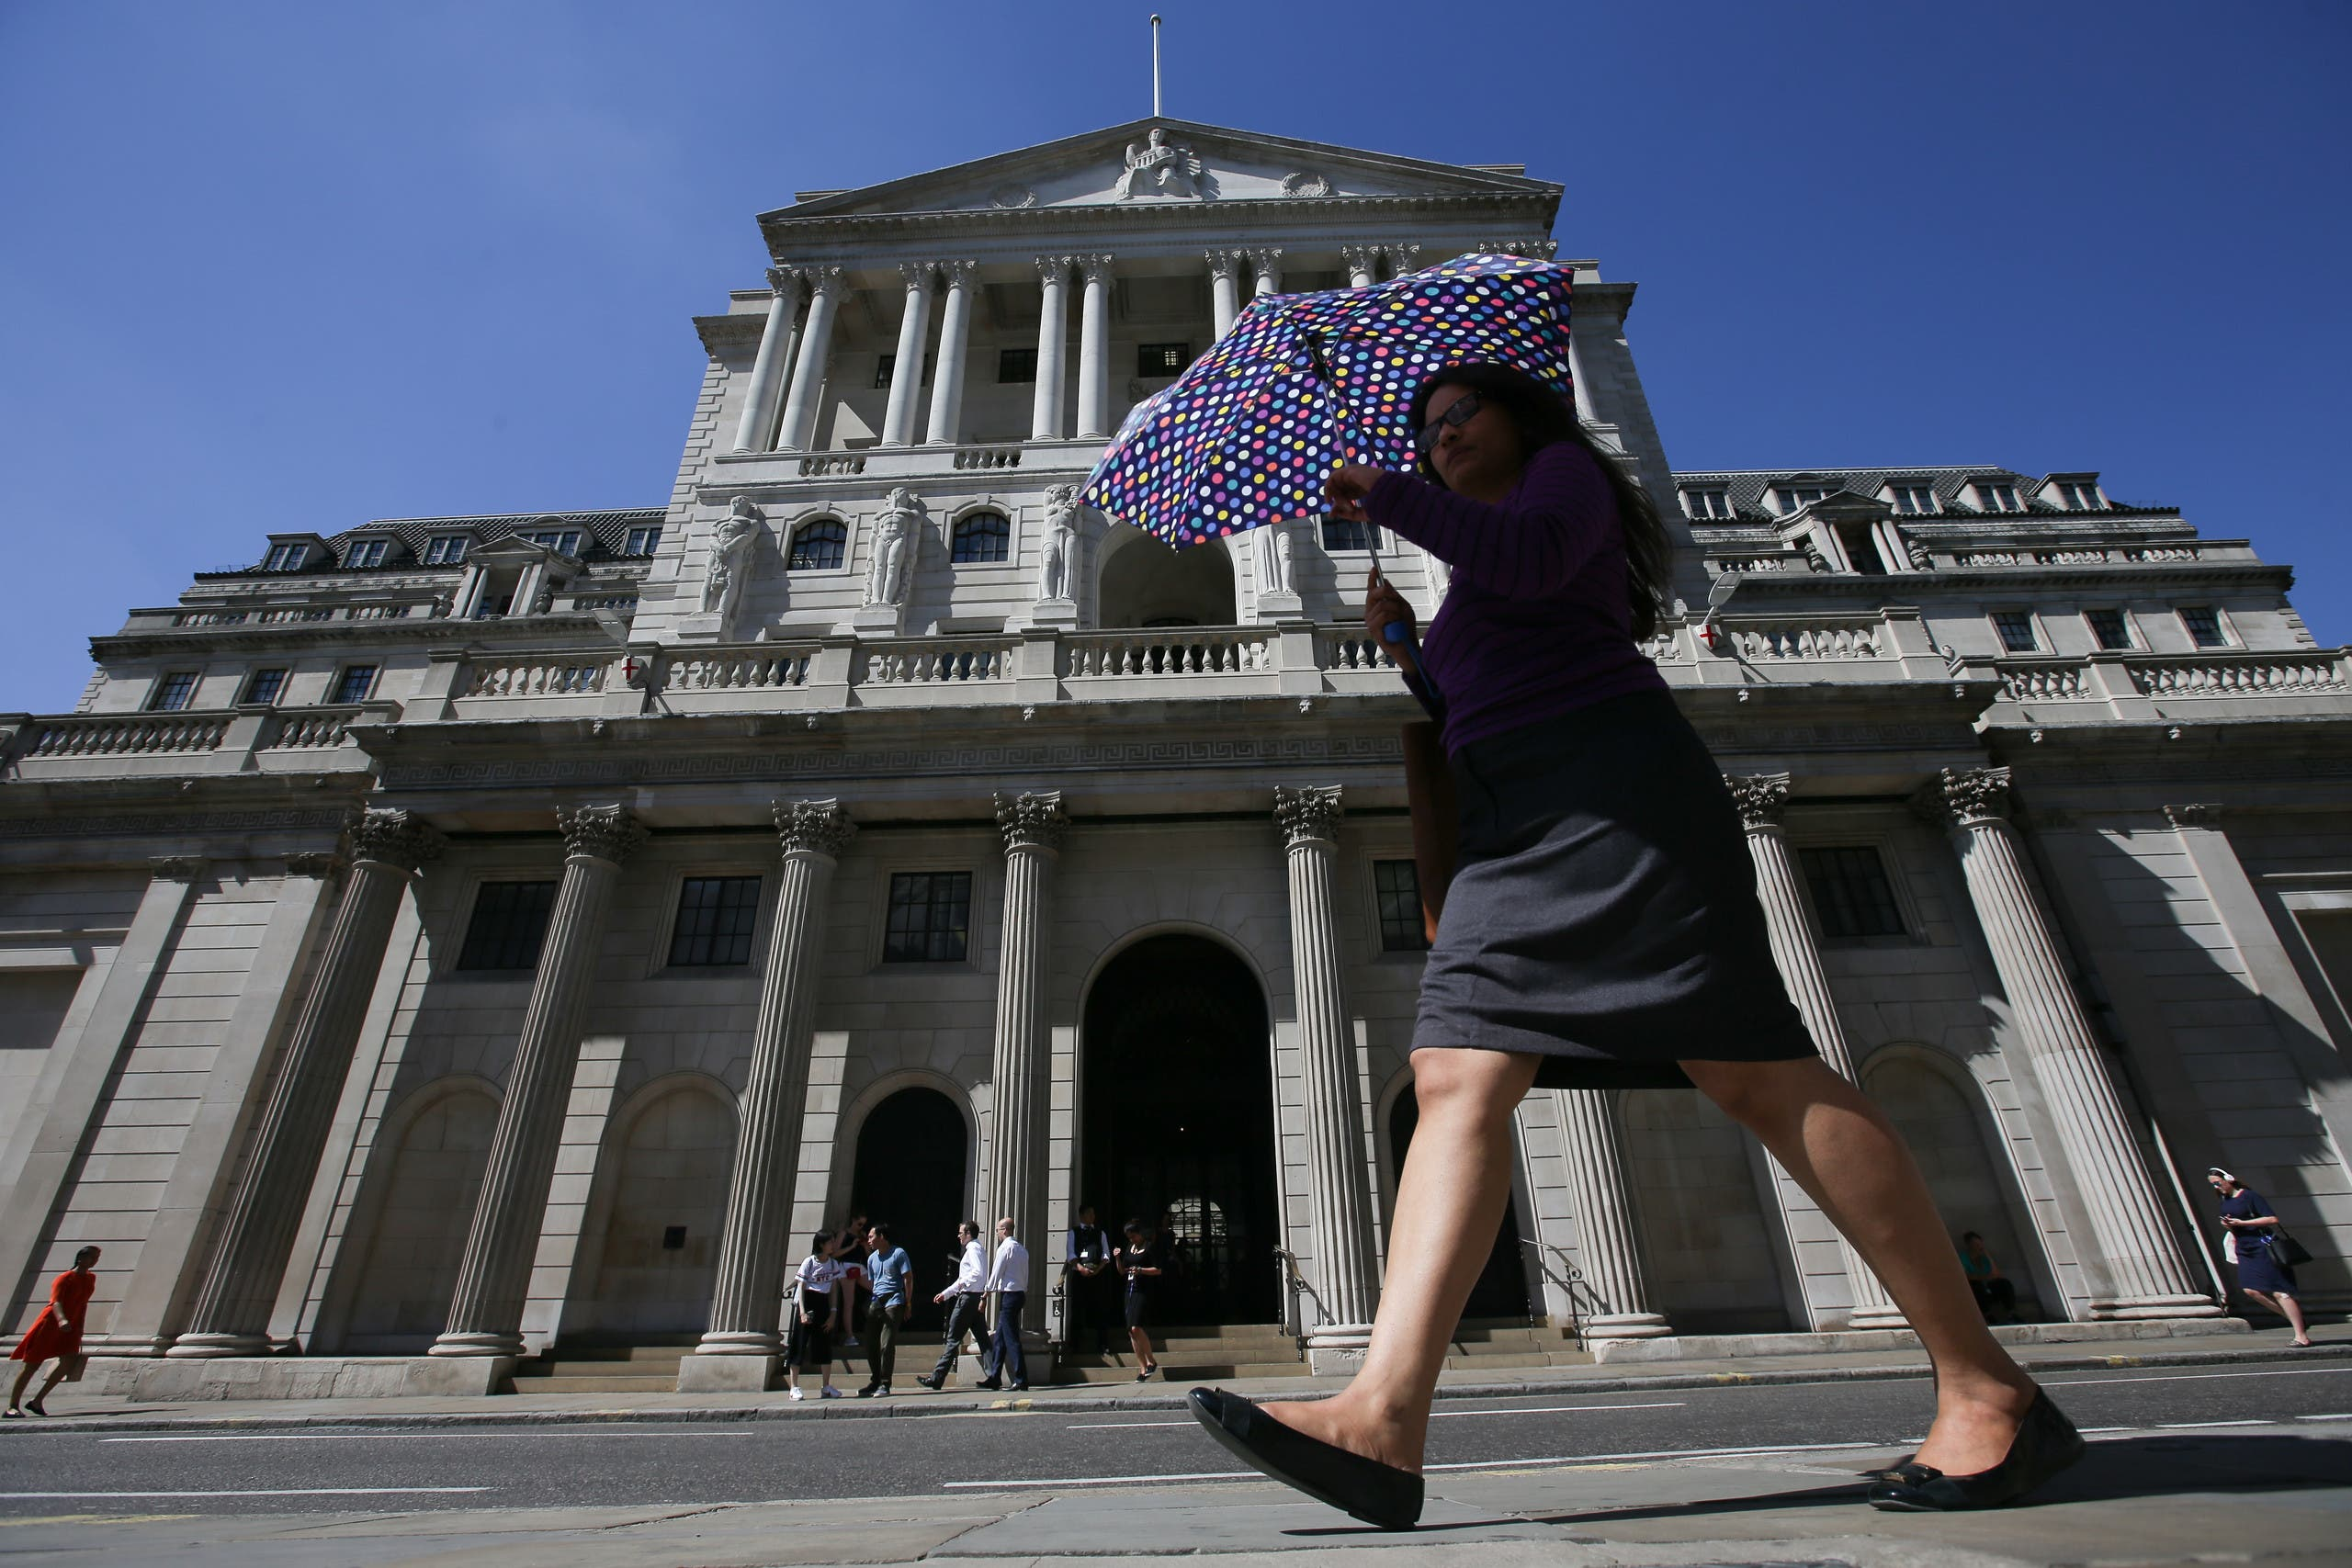 File photo of Bank of England (BoE)  in the City of London. Much of the British economy has been mothballed over the past couple of months, with many sectors unlikely to open again for months. (AFP)